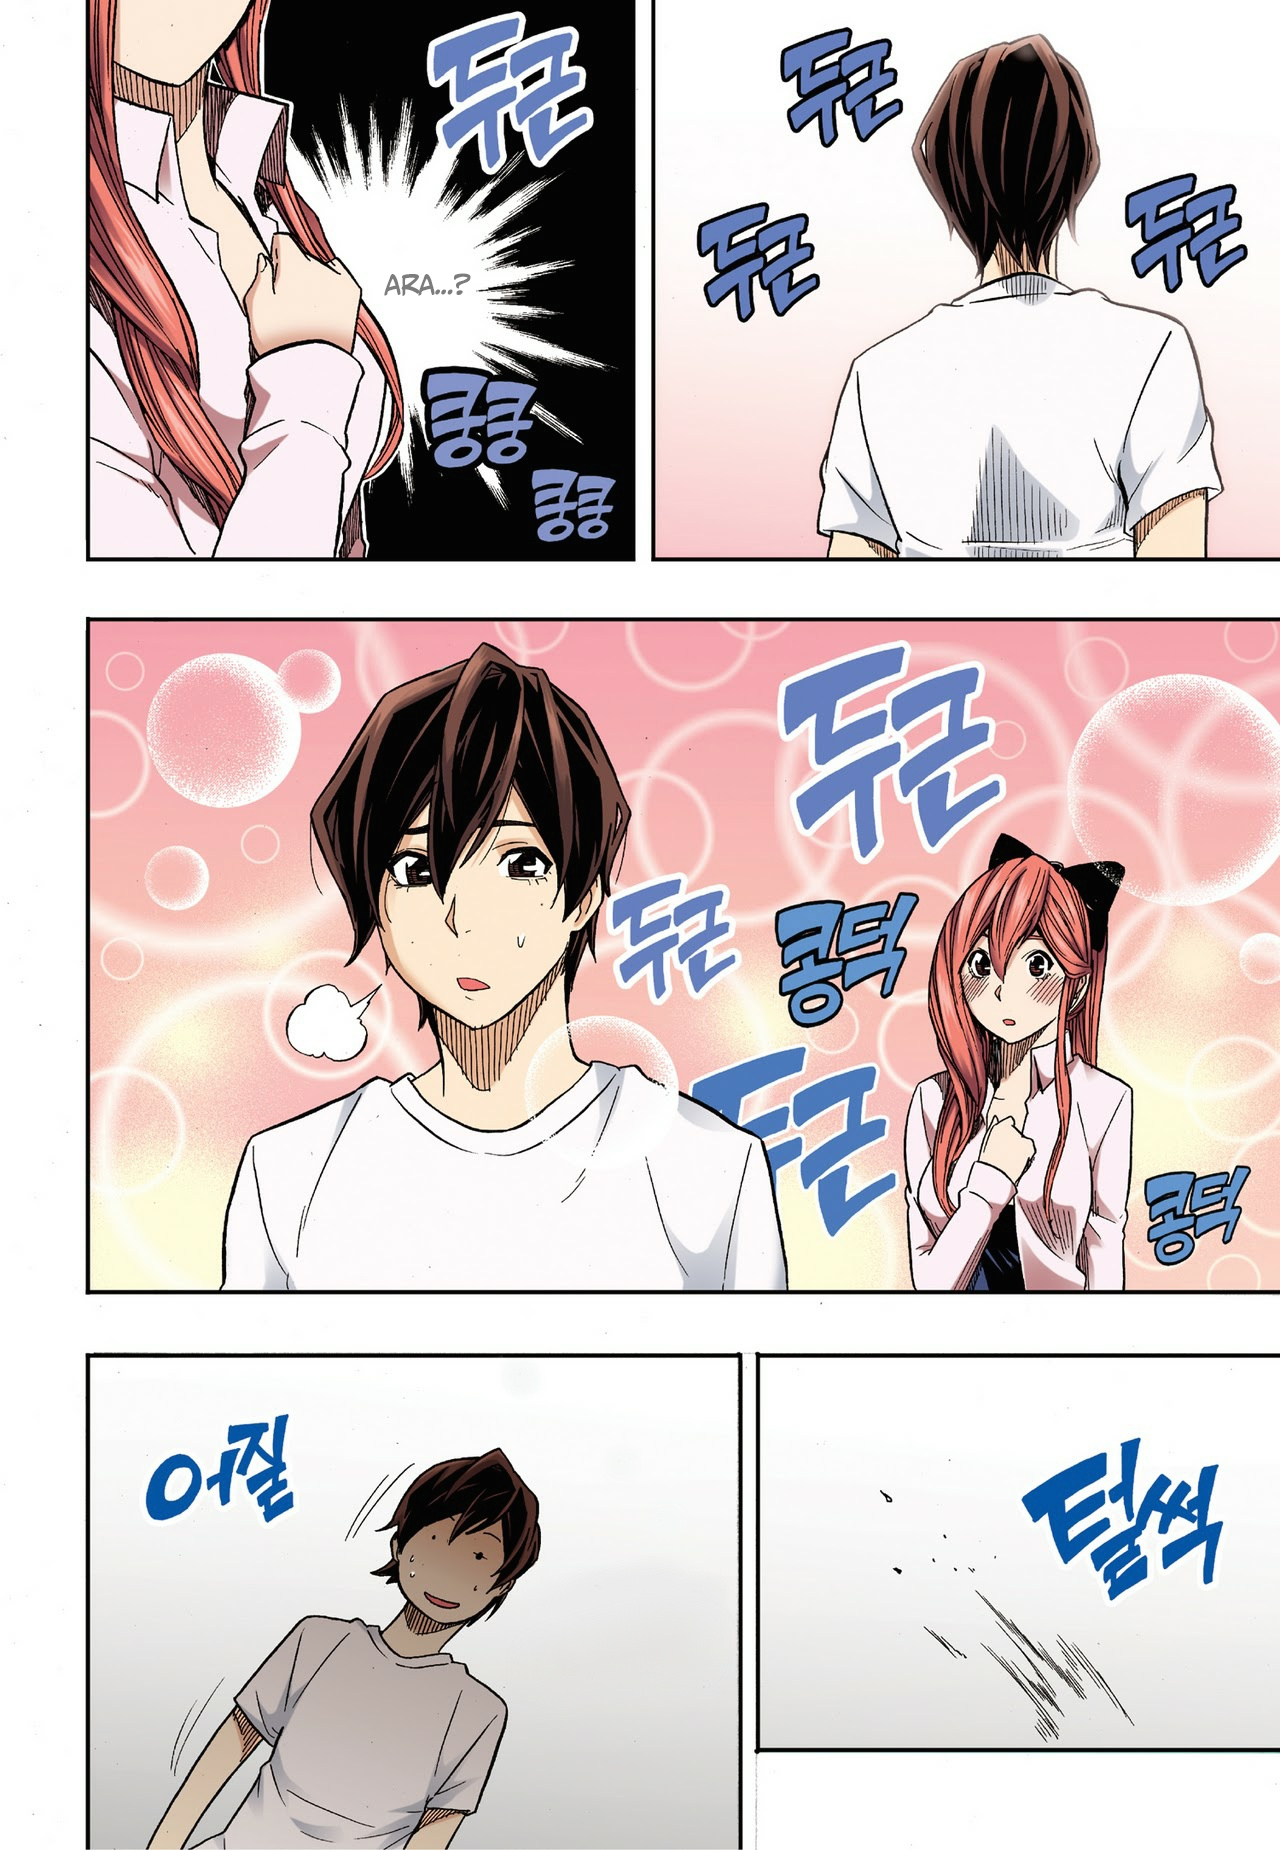 http://c5.ninemanga.com/es_manga/11/14923/418292/3c33333d7b627d40d077fc8060fb9d7a.jpg Page 25